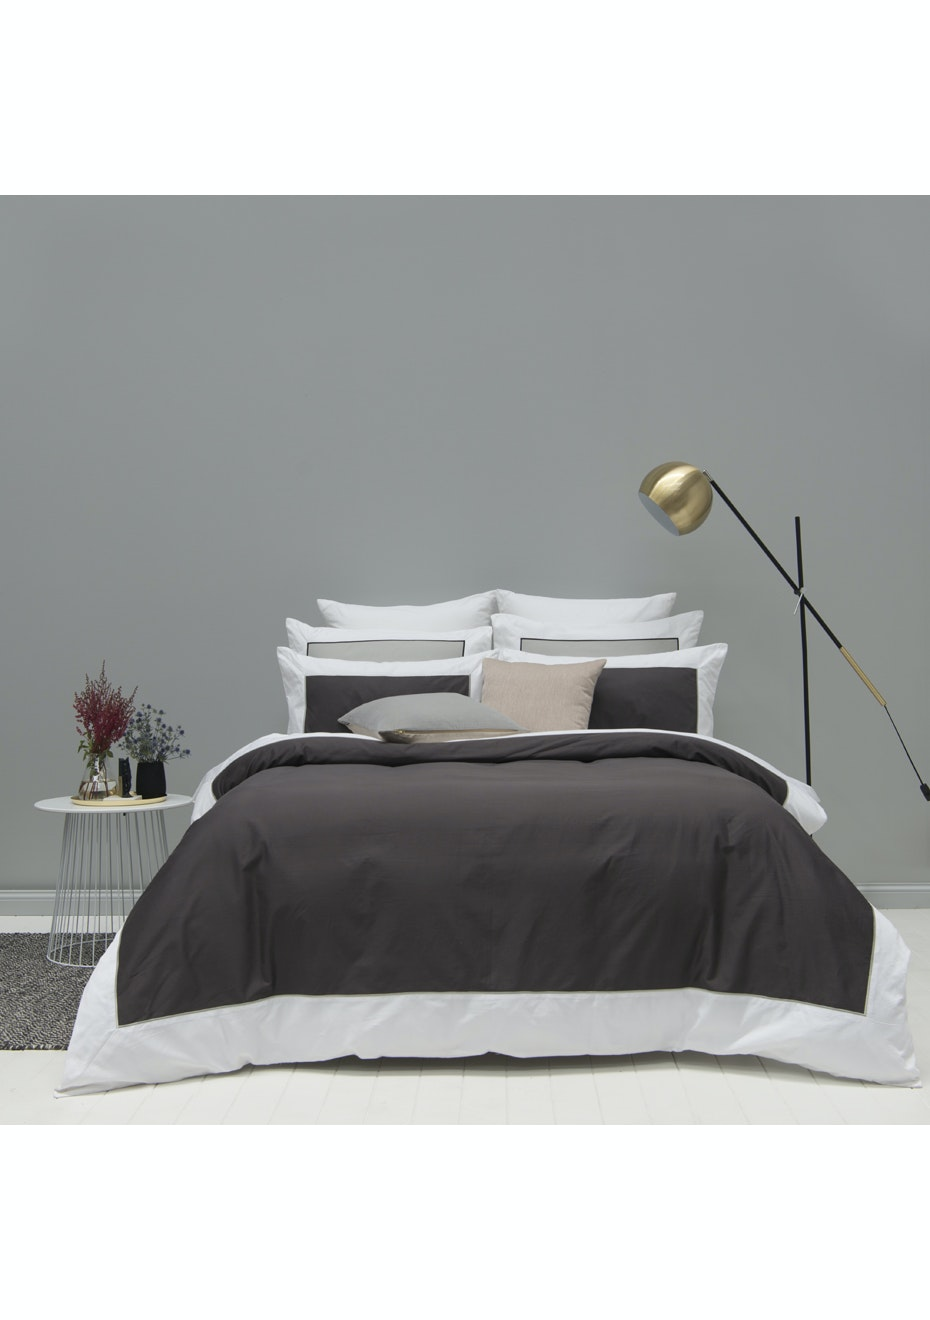 Style & Co 1000 Thread count Egyptian Cotton Hotel Collection Ascot Quilt Cover sets Queen Coal